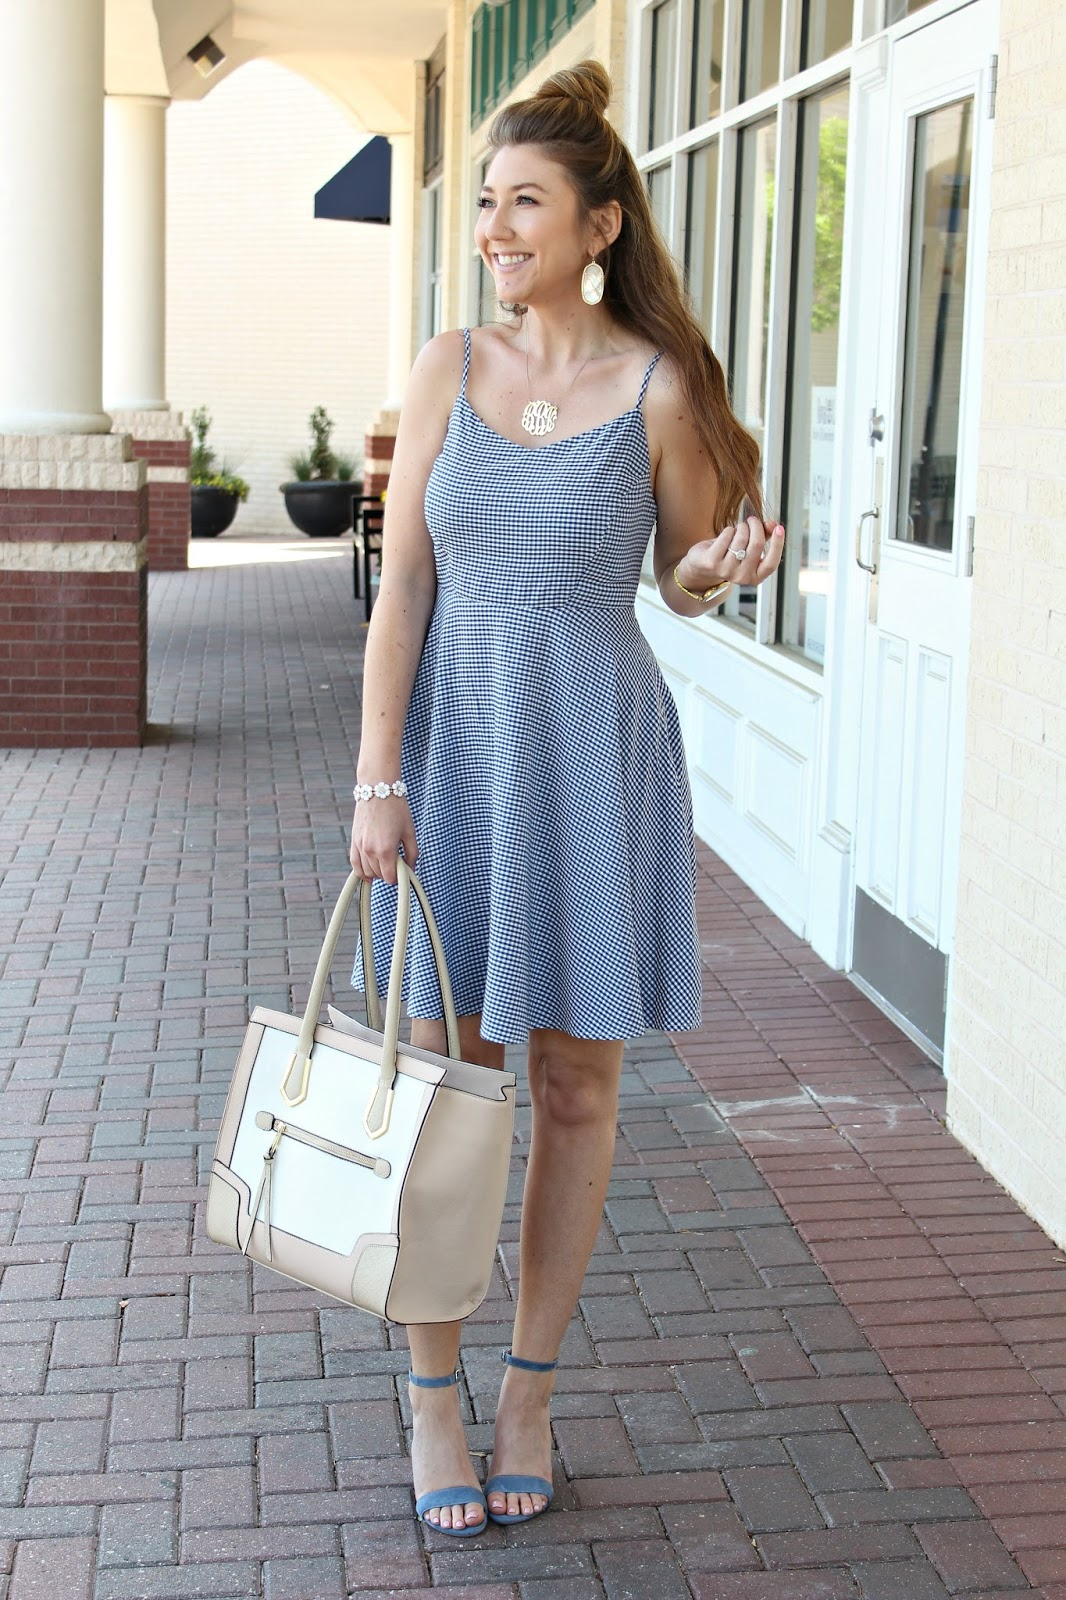 Old Navy Cami Dress  Steve Madden Heels  Target Tote  Monogram  Necklace  Kendra Scott Earrings